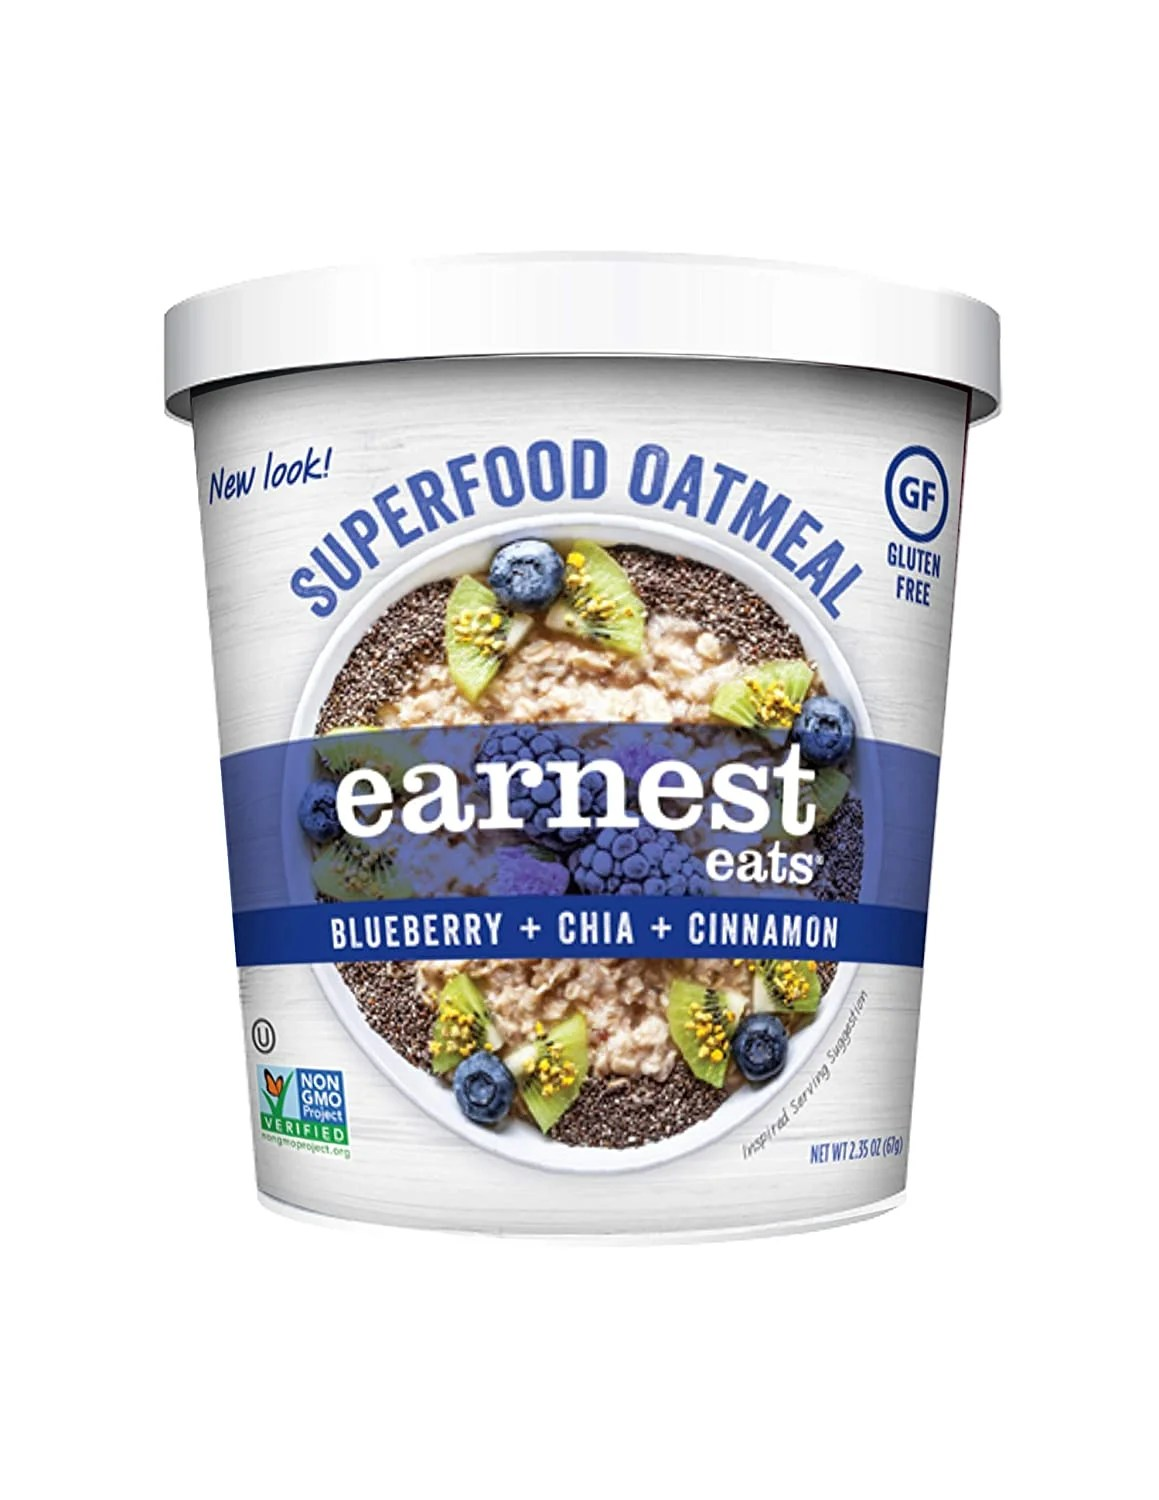 Earnest Eats Gluten-Free Superfood Oatmeal